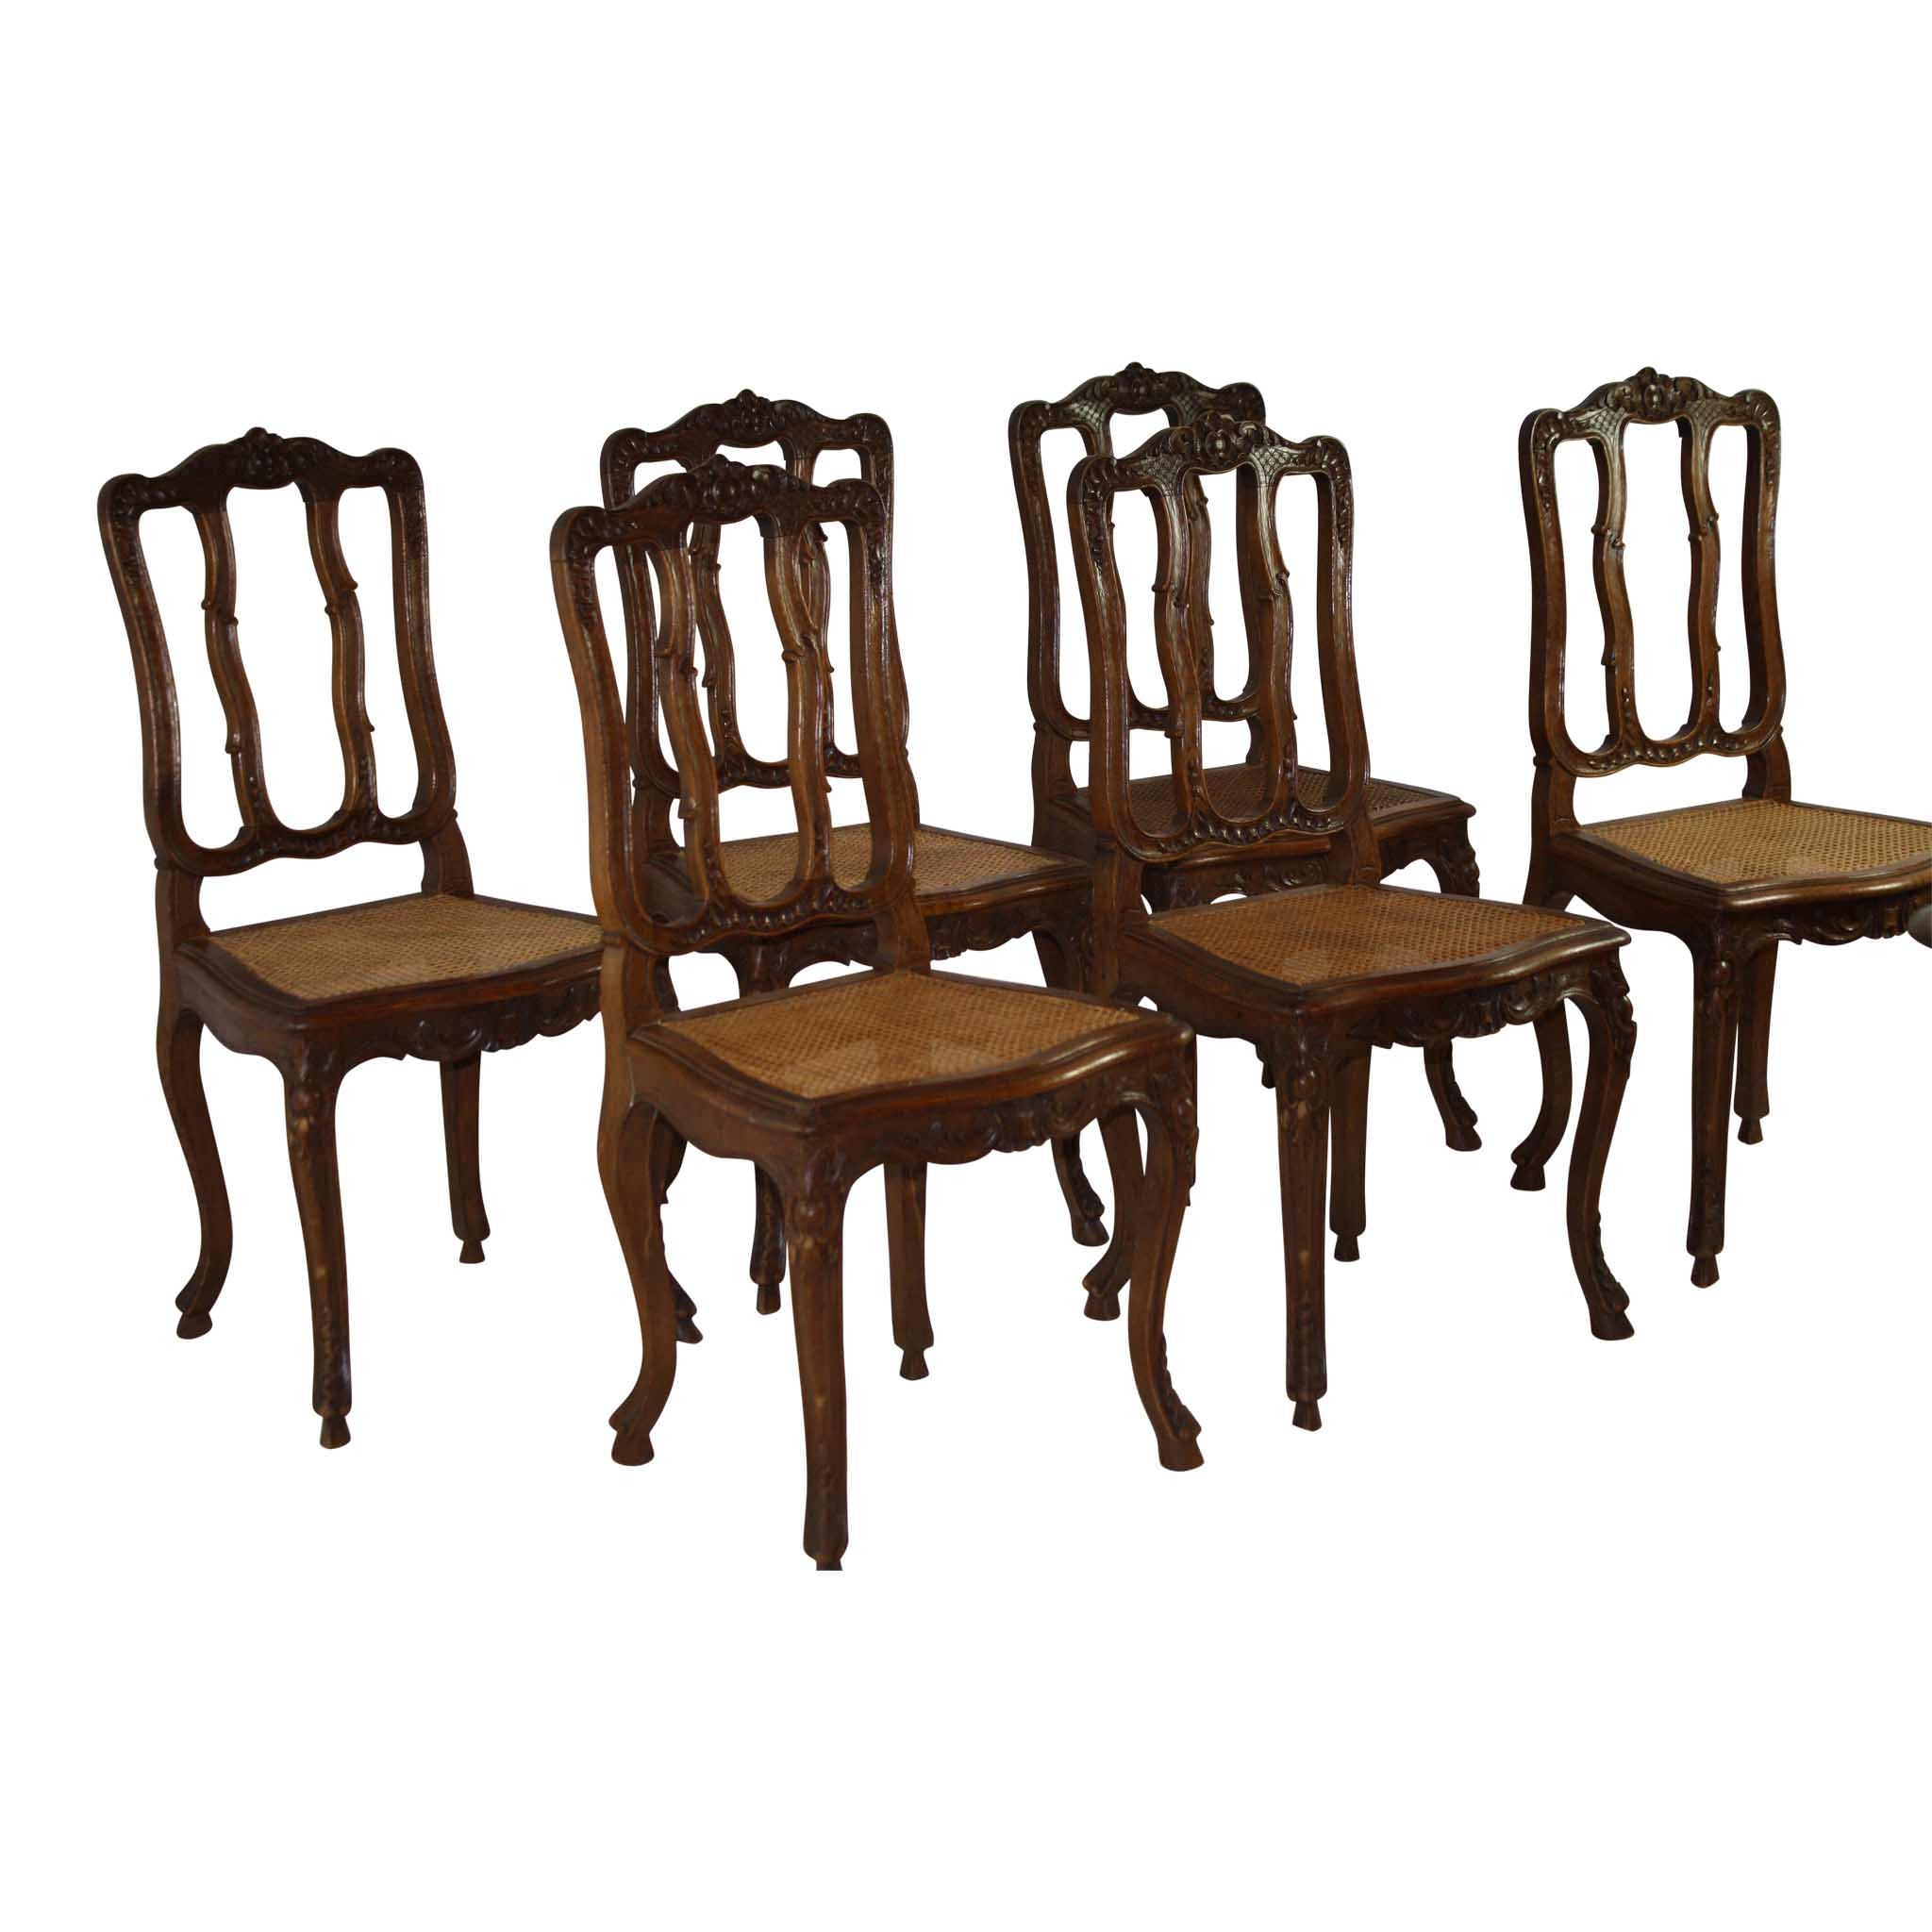 Louis XV 7 Piece Dining Room Set